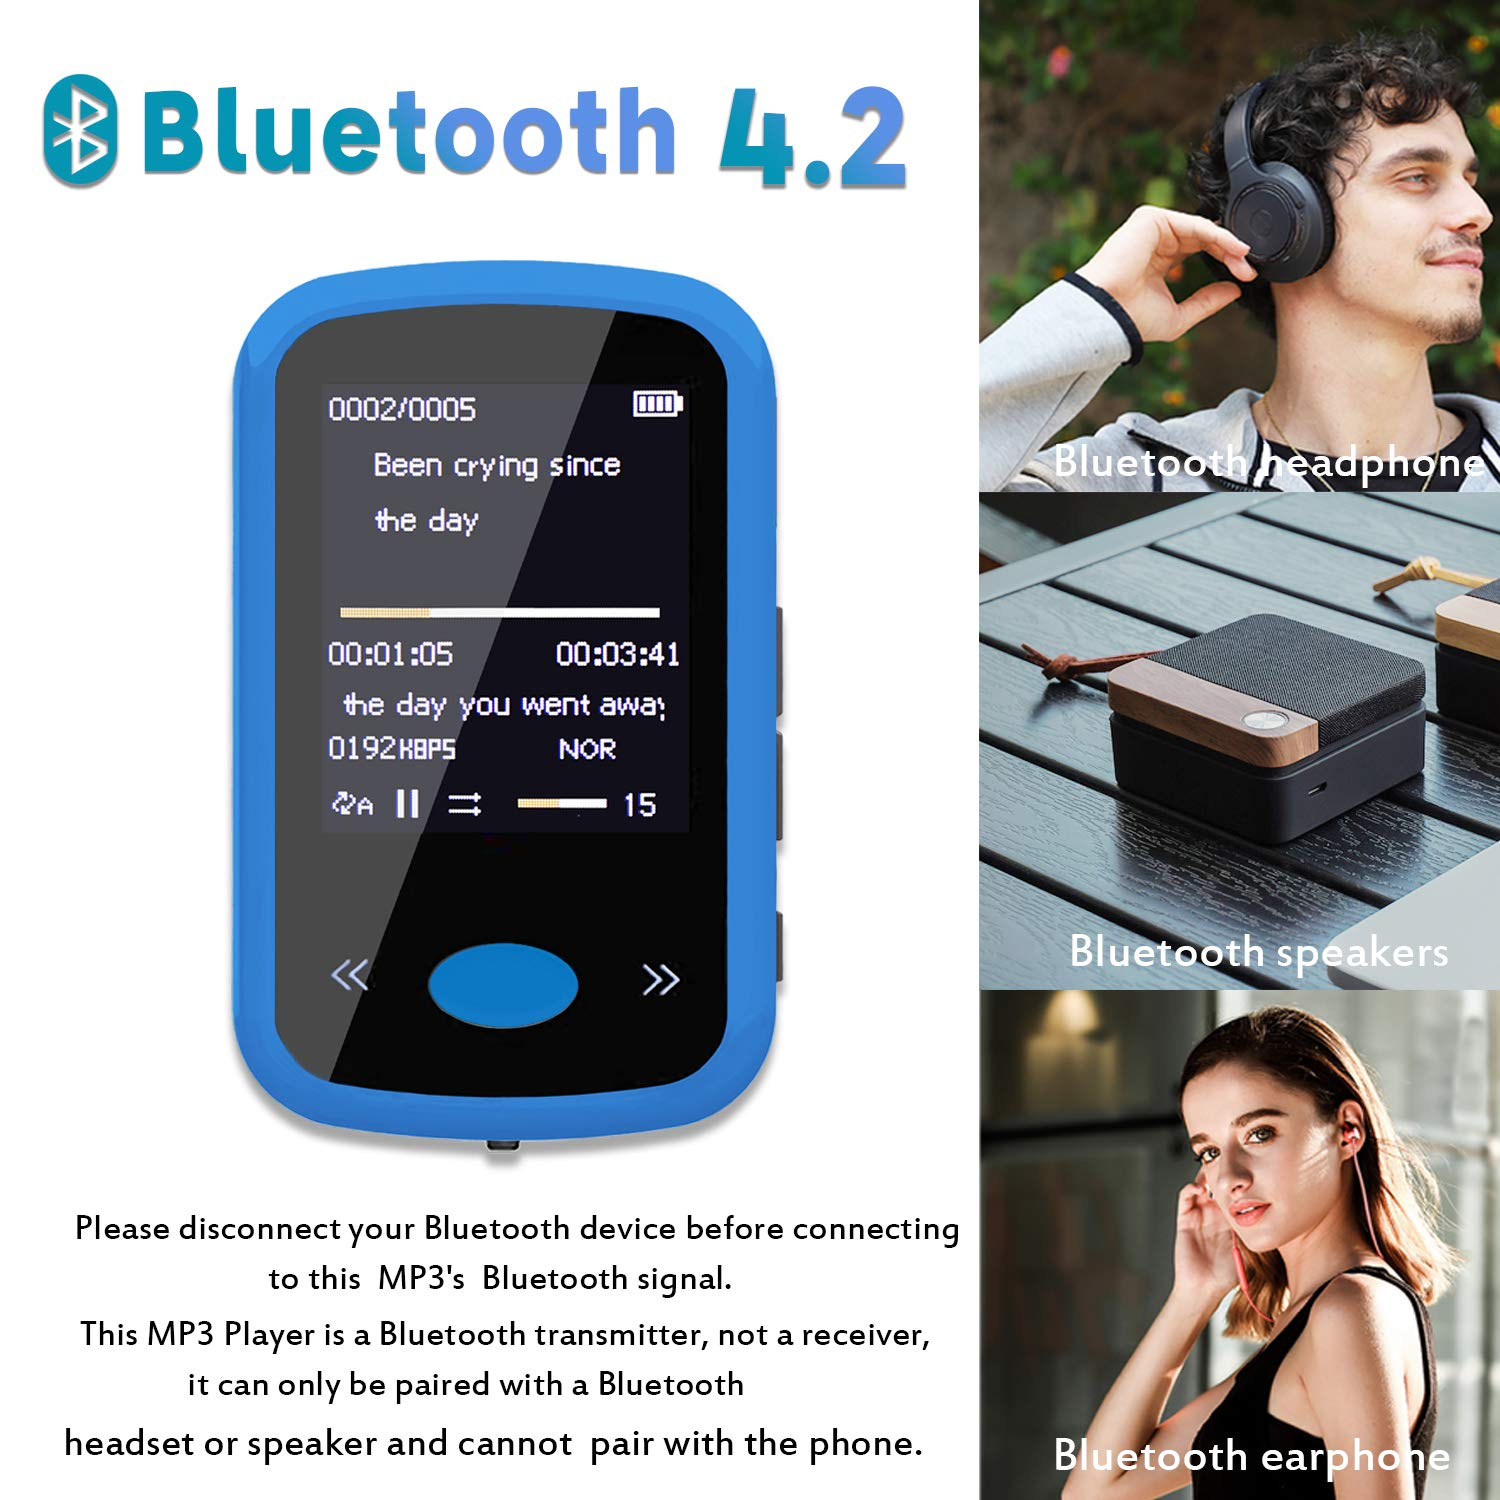 Portable Lossless Sound Music Player with Headphones FM Radio Pedometer,Voice Recorder 8GB Blue Alexan 8GB MP3 Player with Bluetooth 4.2 Wearable MP3 Player with Clip